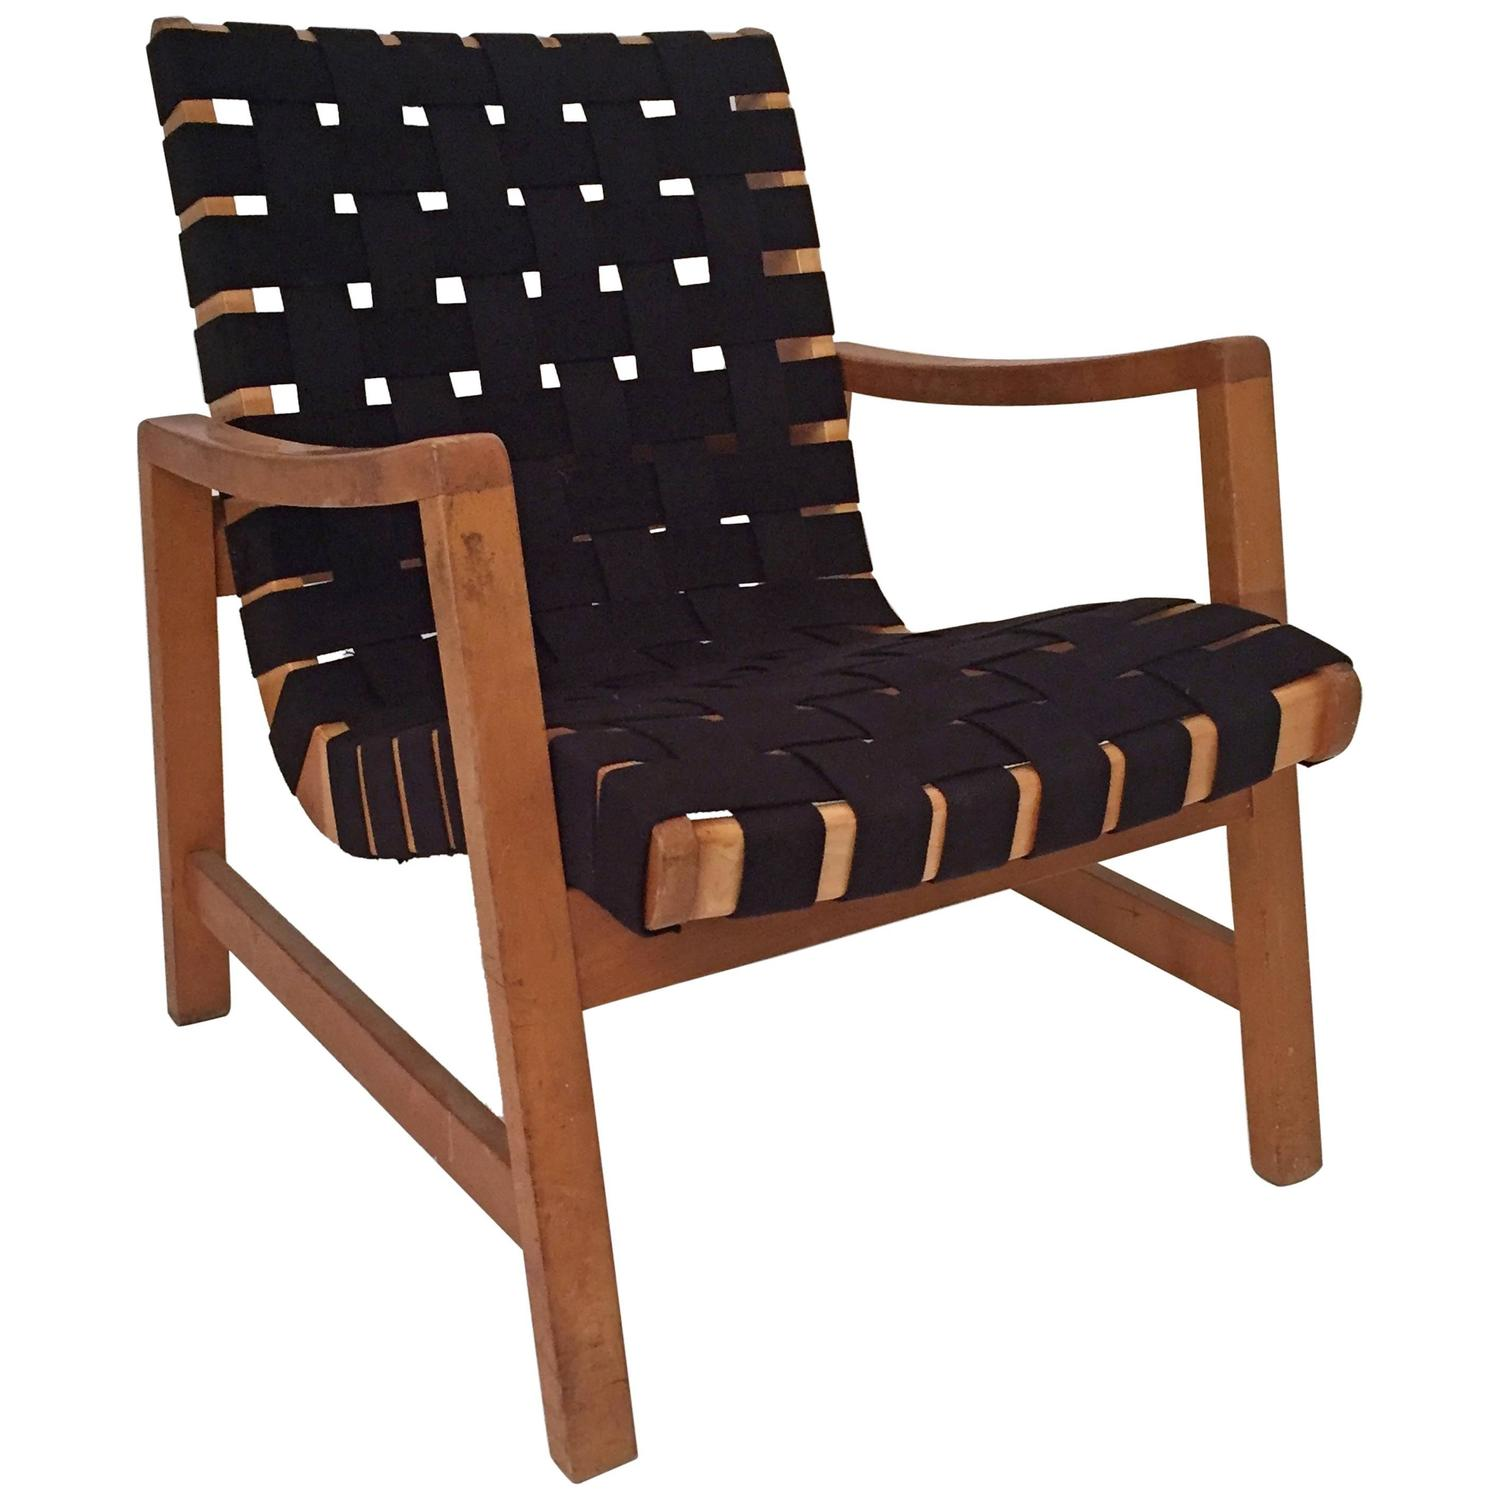 Early jens risom for knoll associates 652 armchair at 1stdibs for Knoll and associates